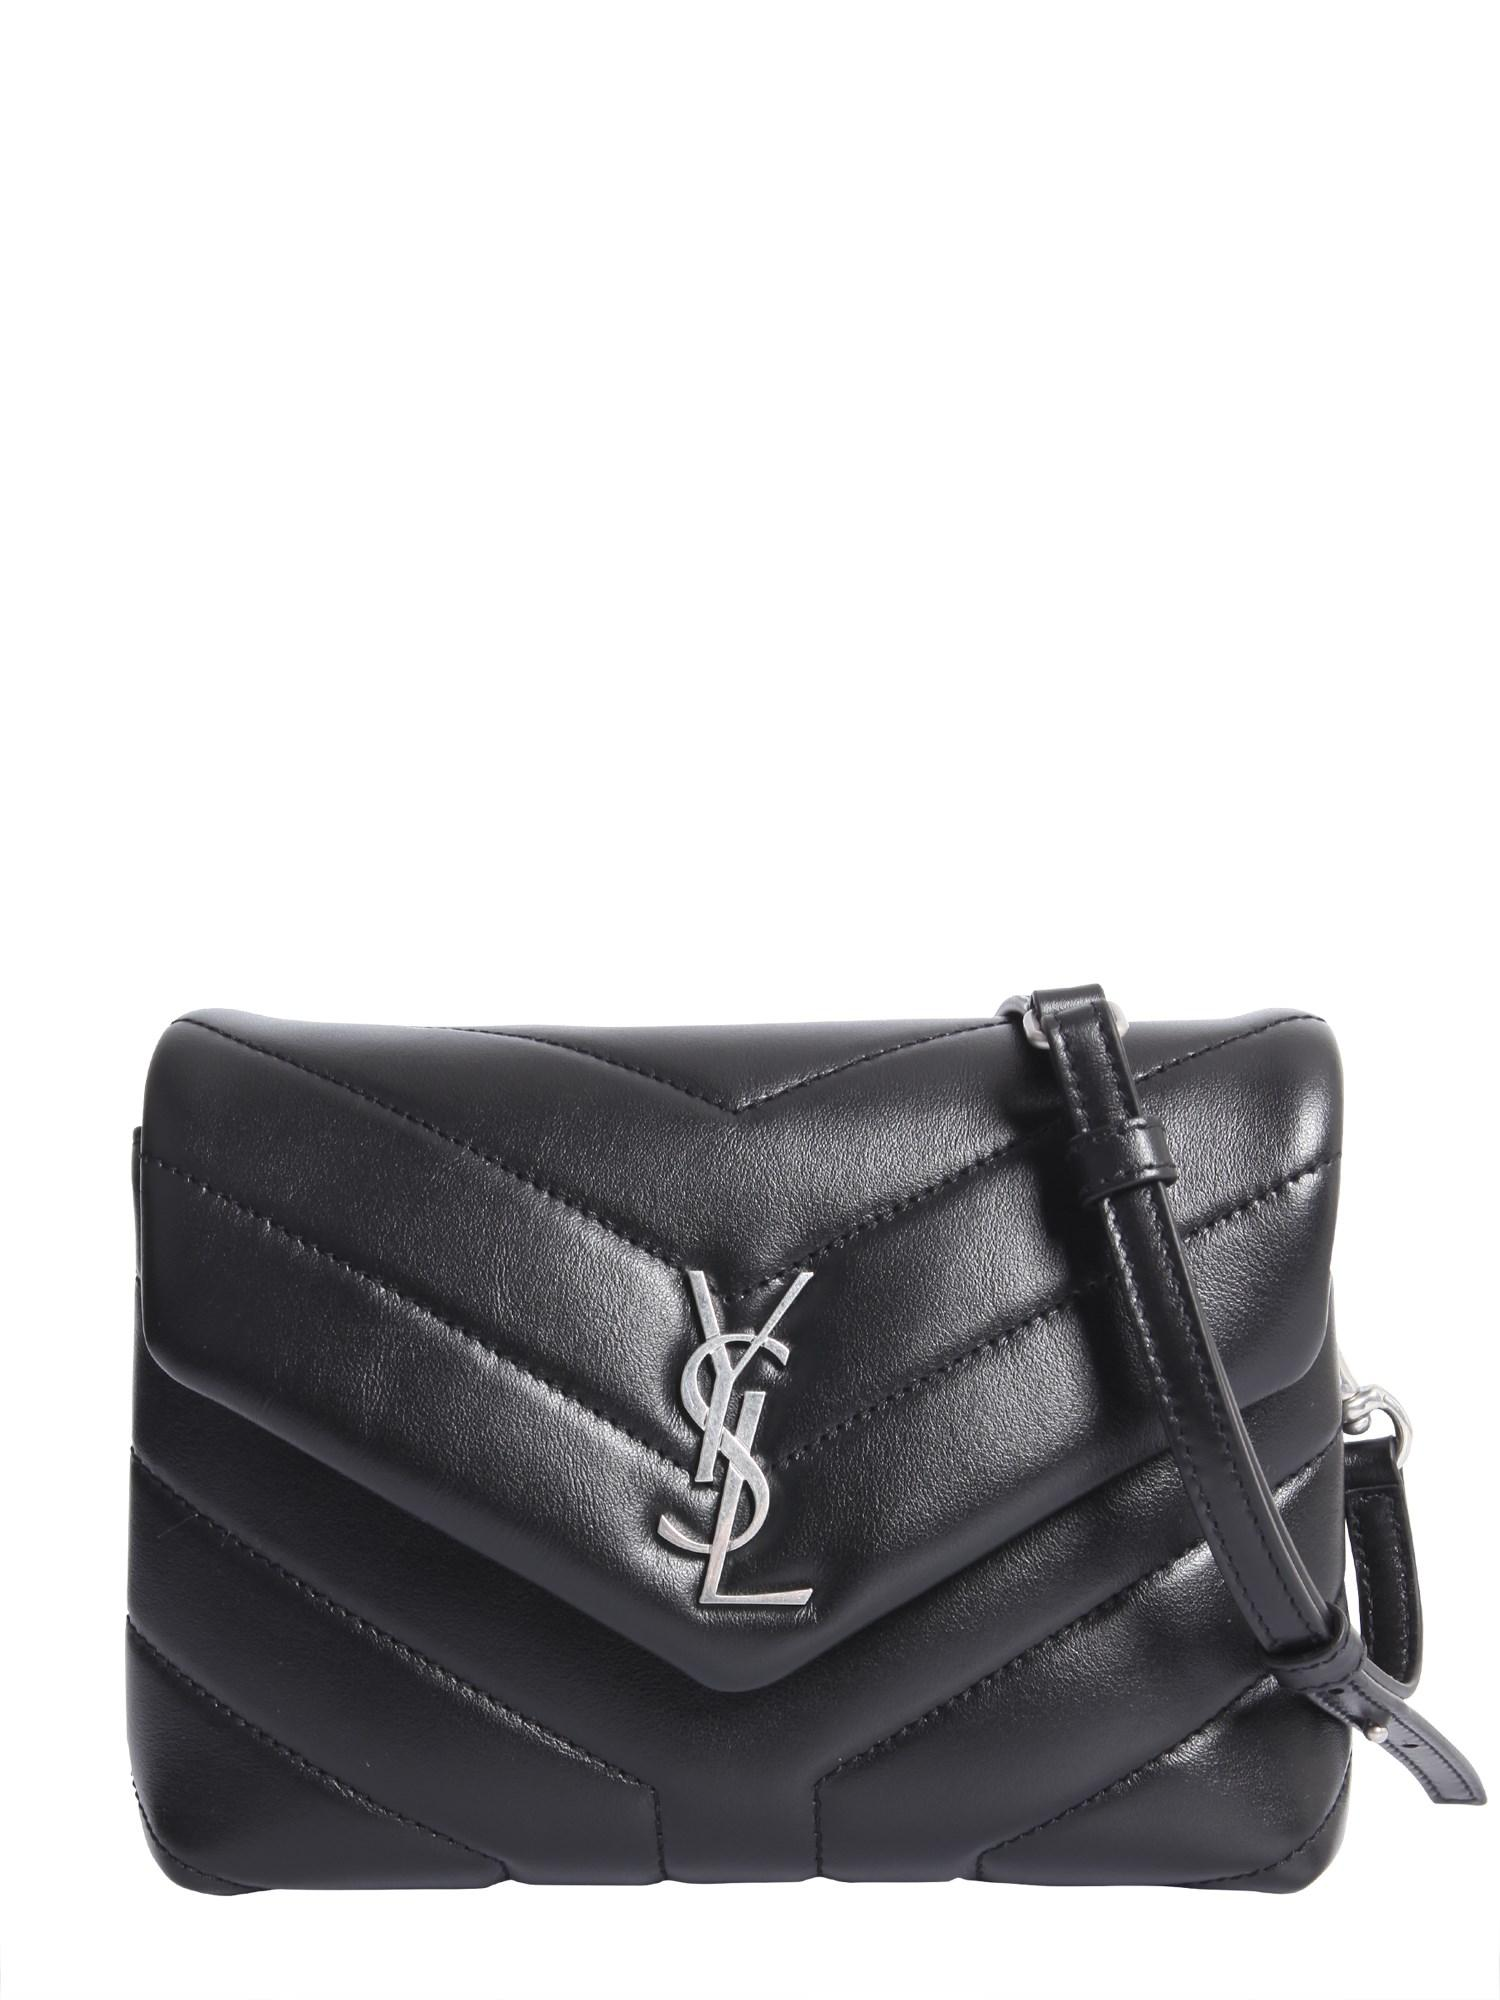 Saint Laurent Loulou Toy Bag In